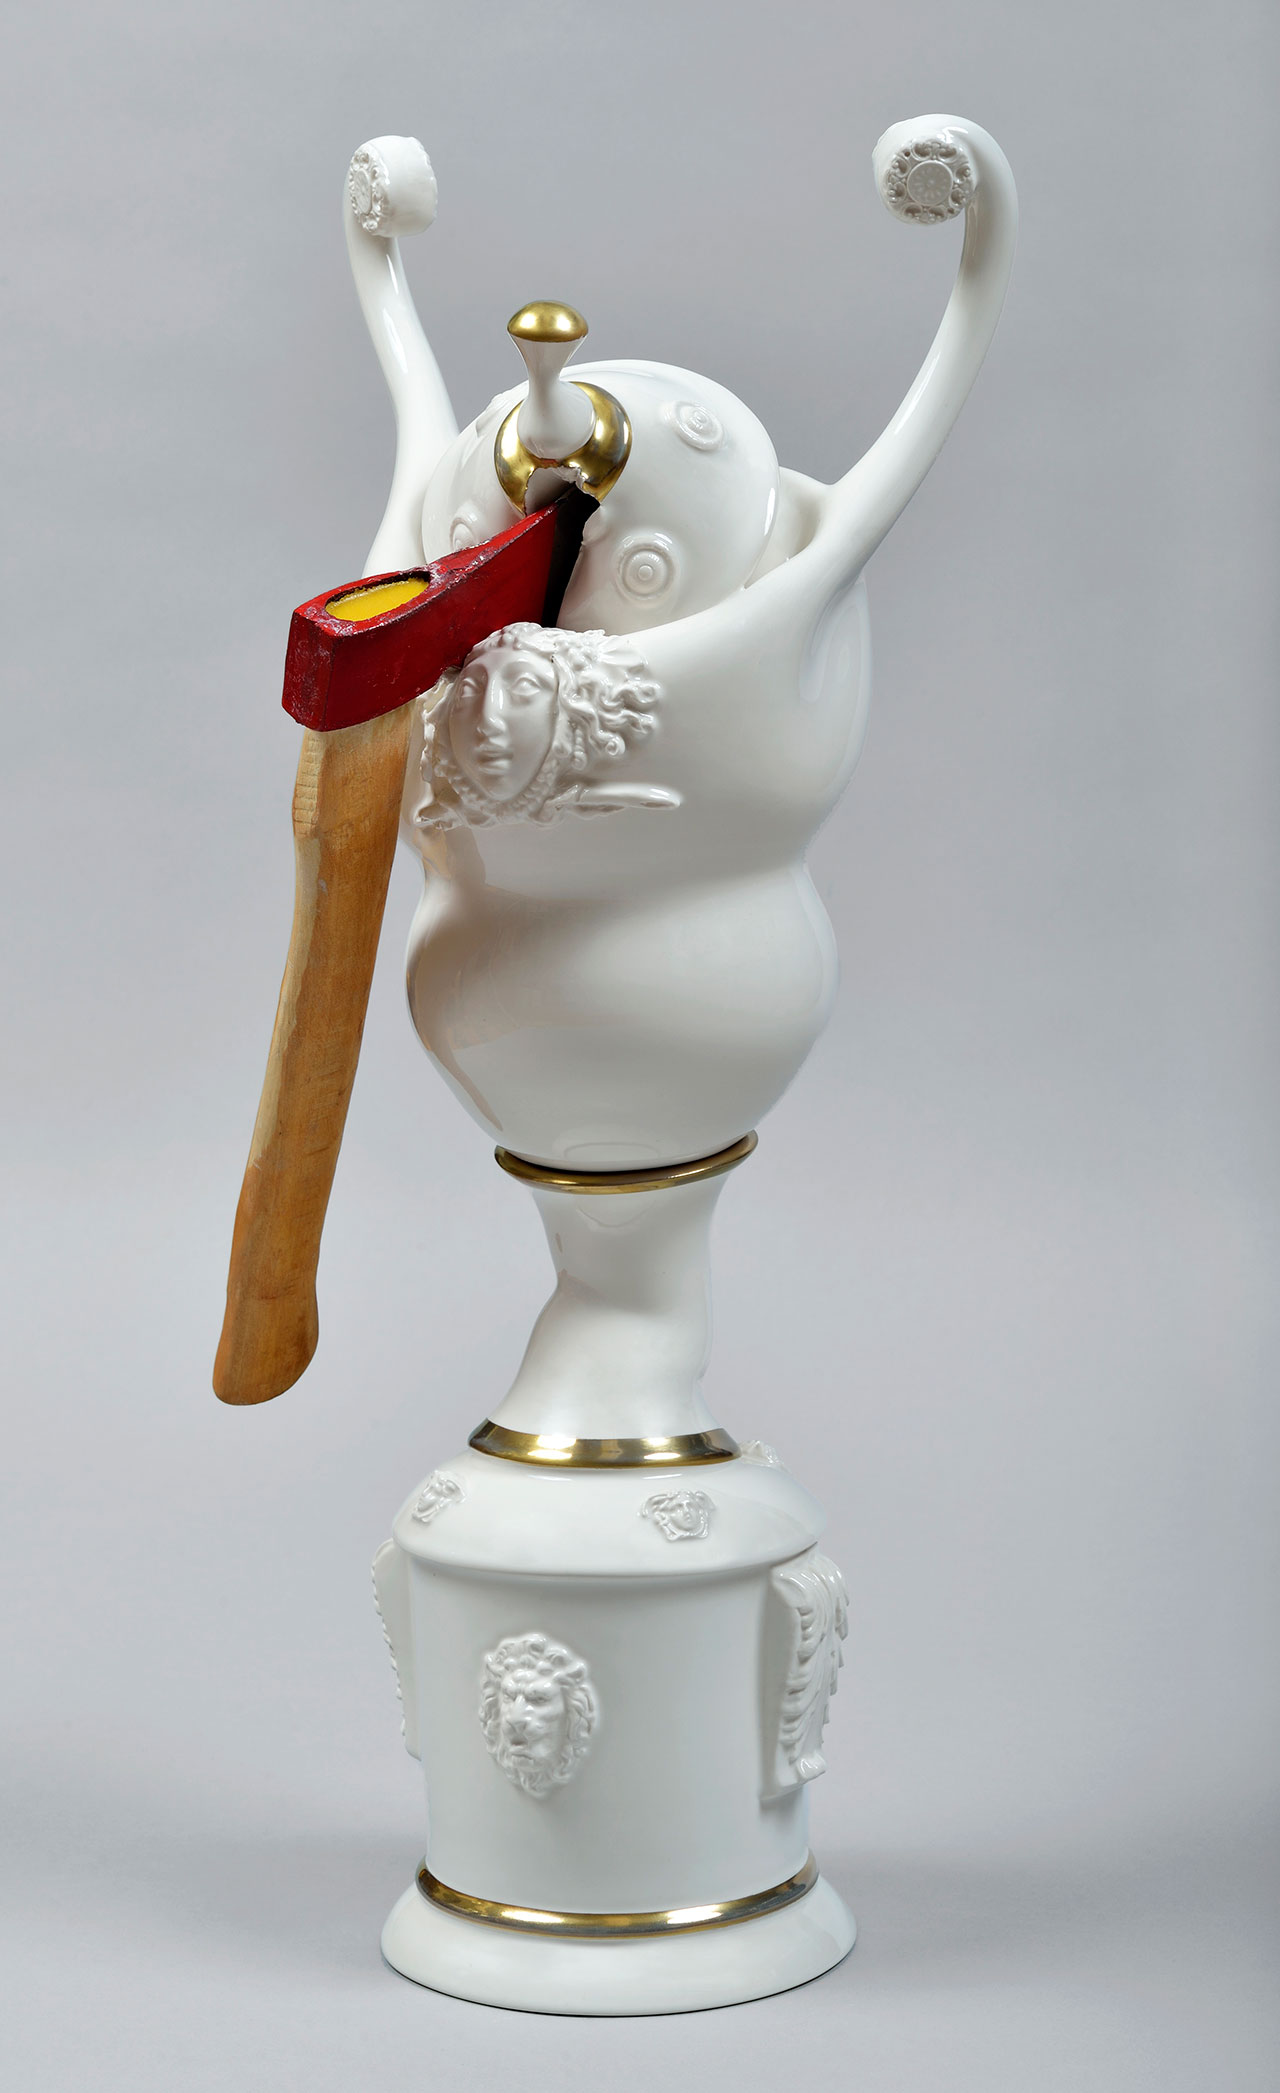 Craste Laurent, Révolution II, 2014 /2015. Porcelain, glaze, gold, axe, 62.5  x 28.3 x 25 cm.